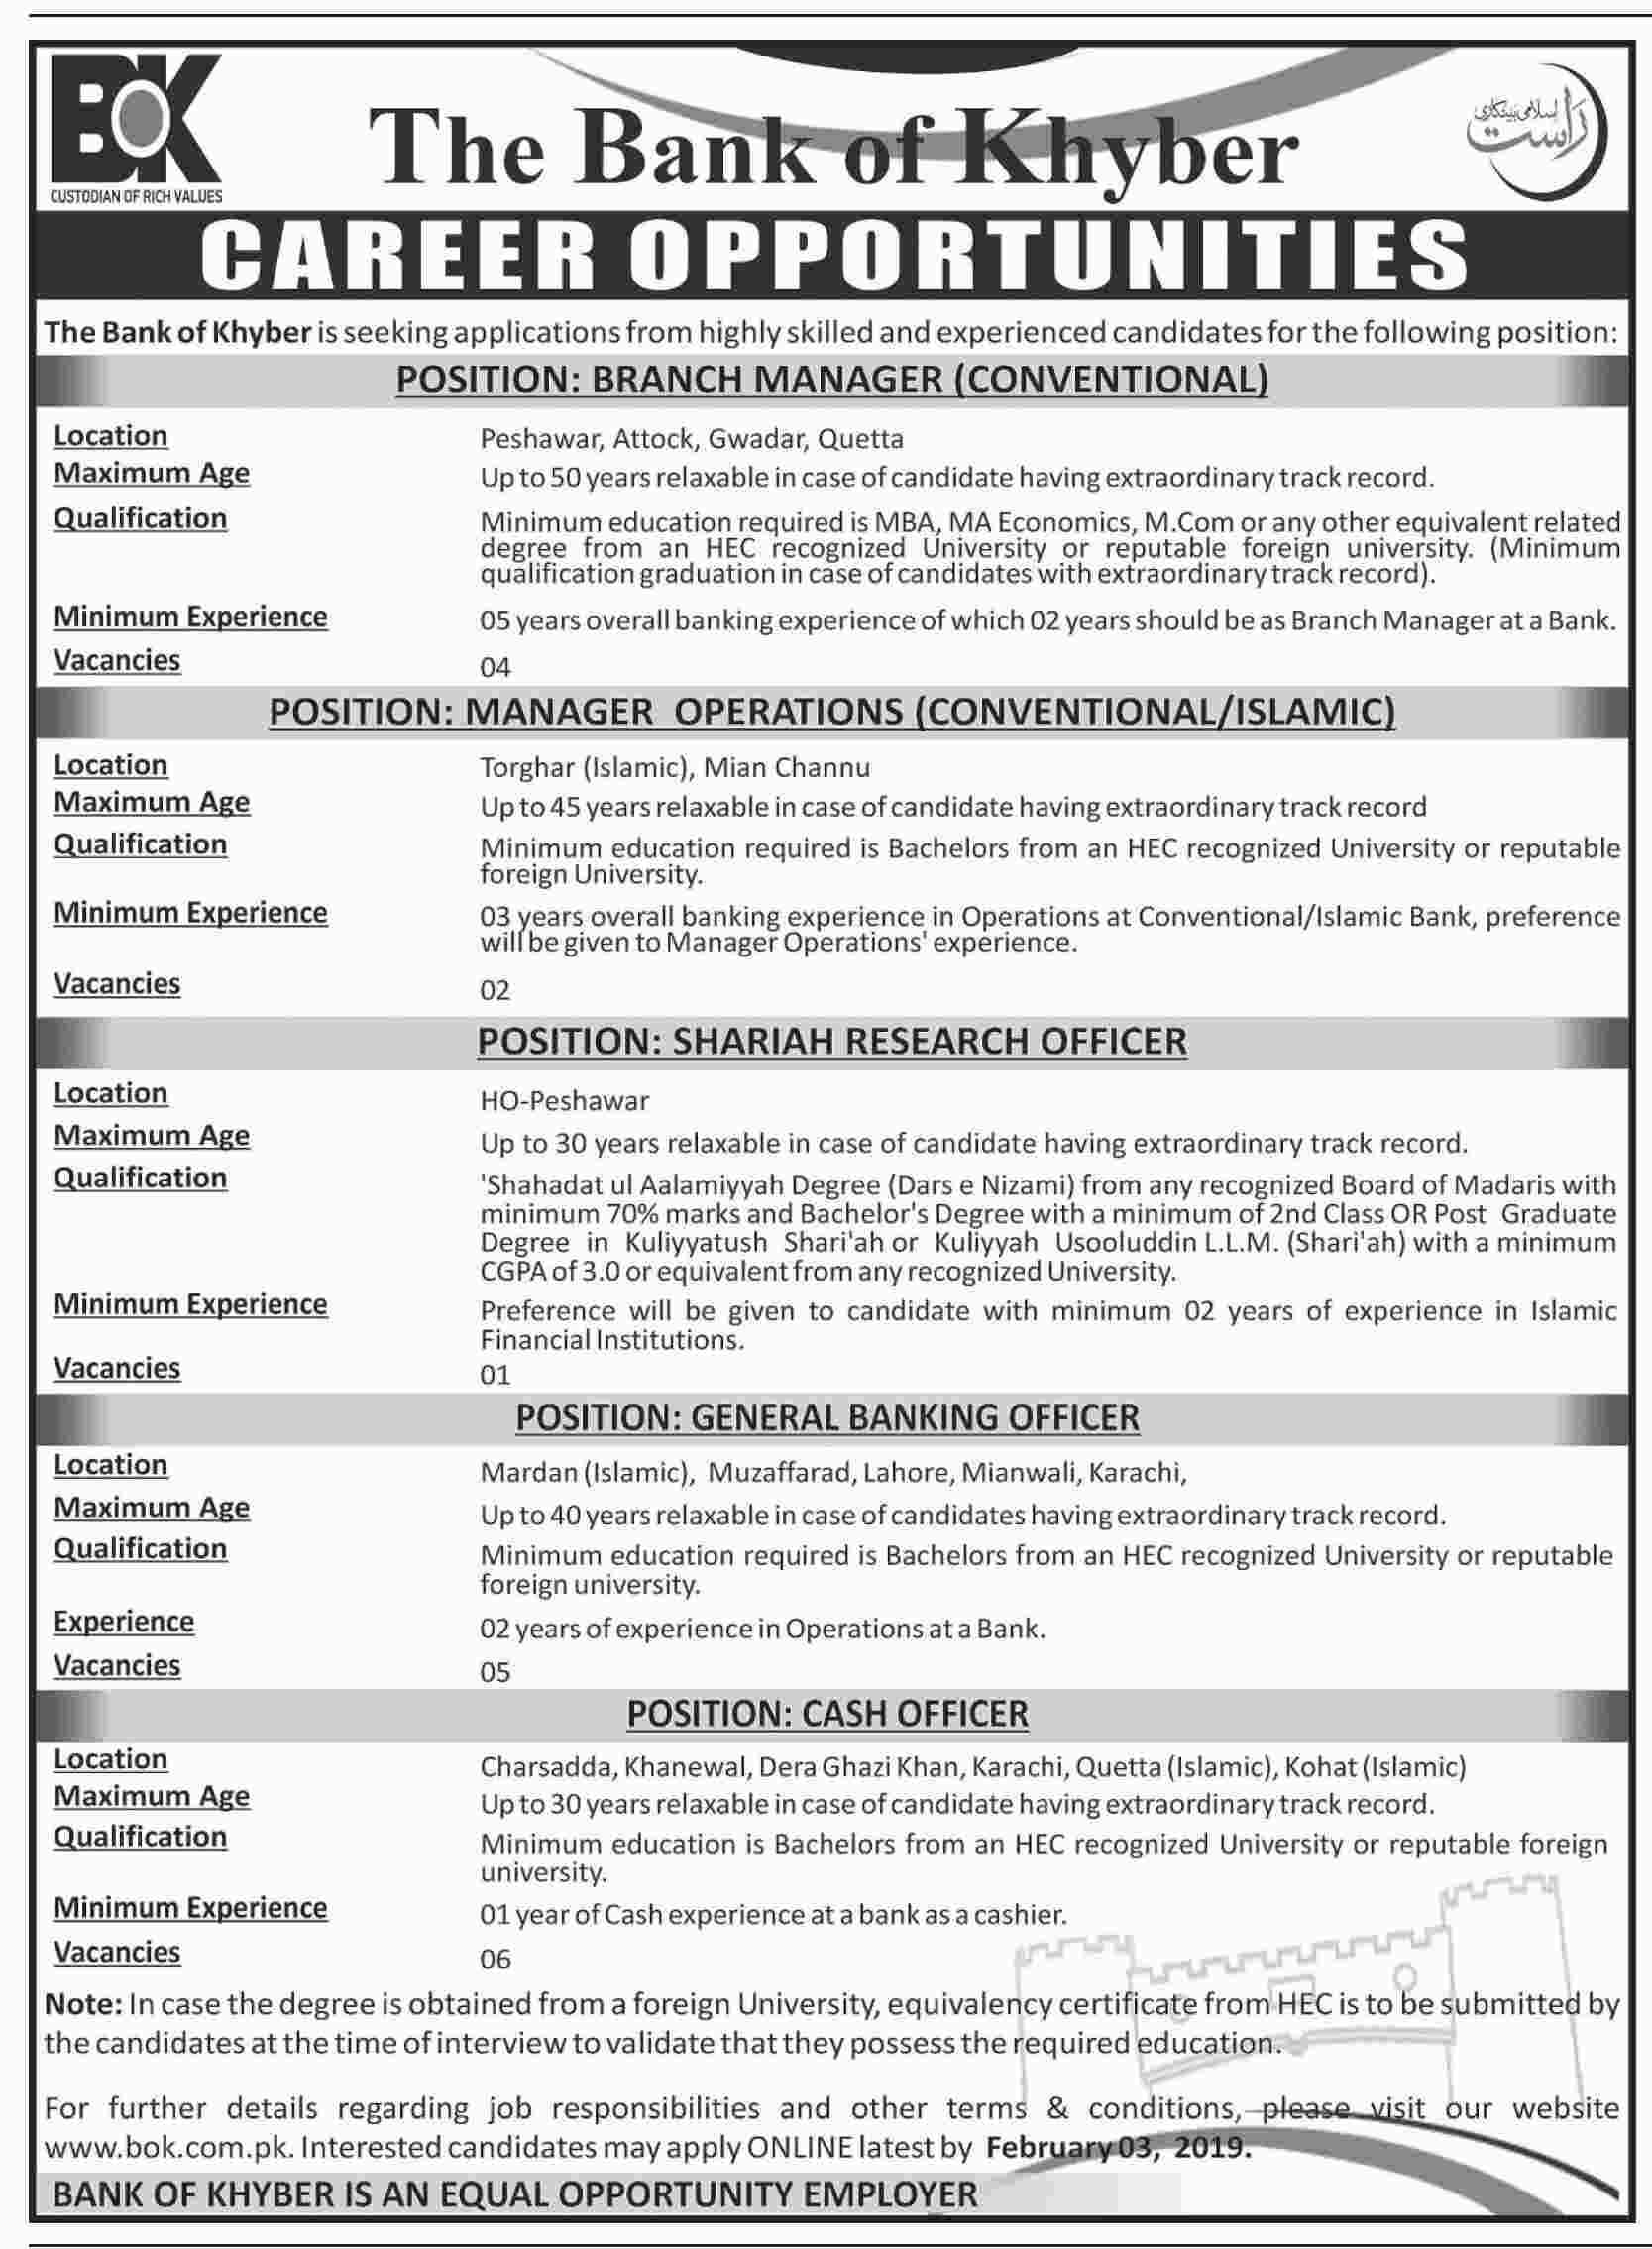 The Bank of Khyber jobs